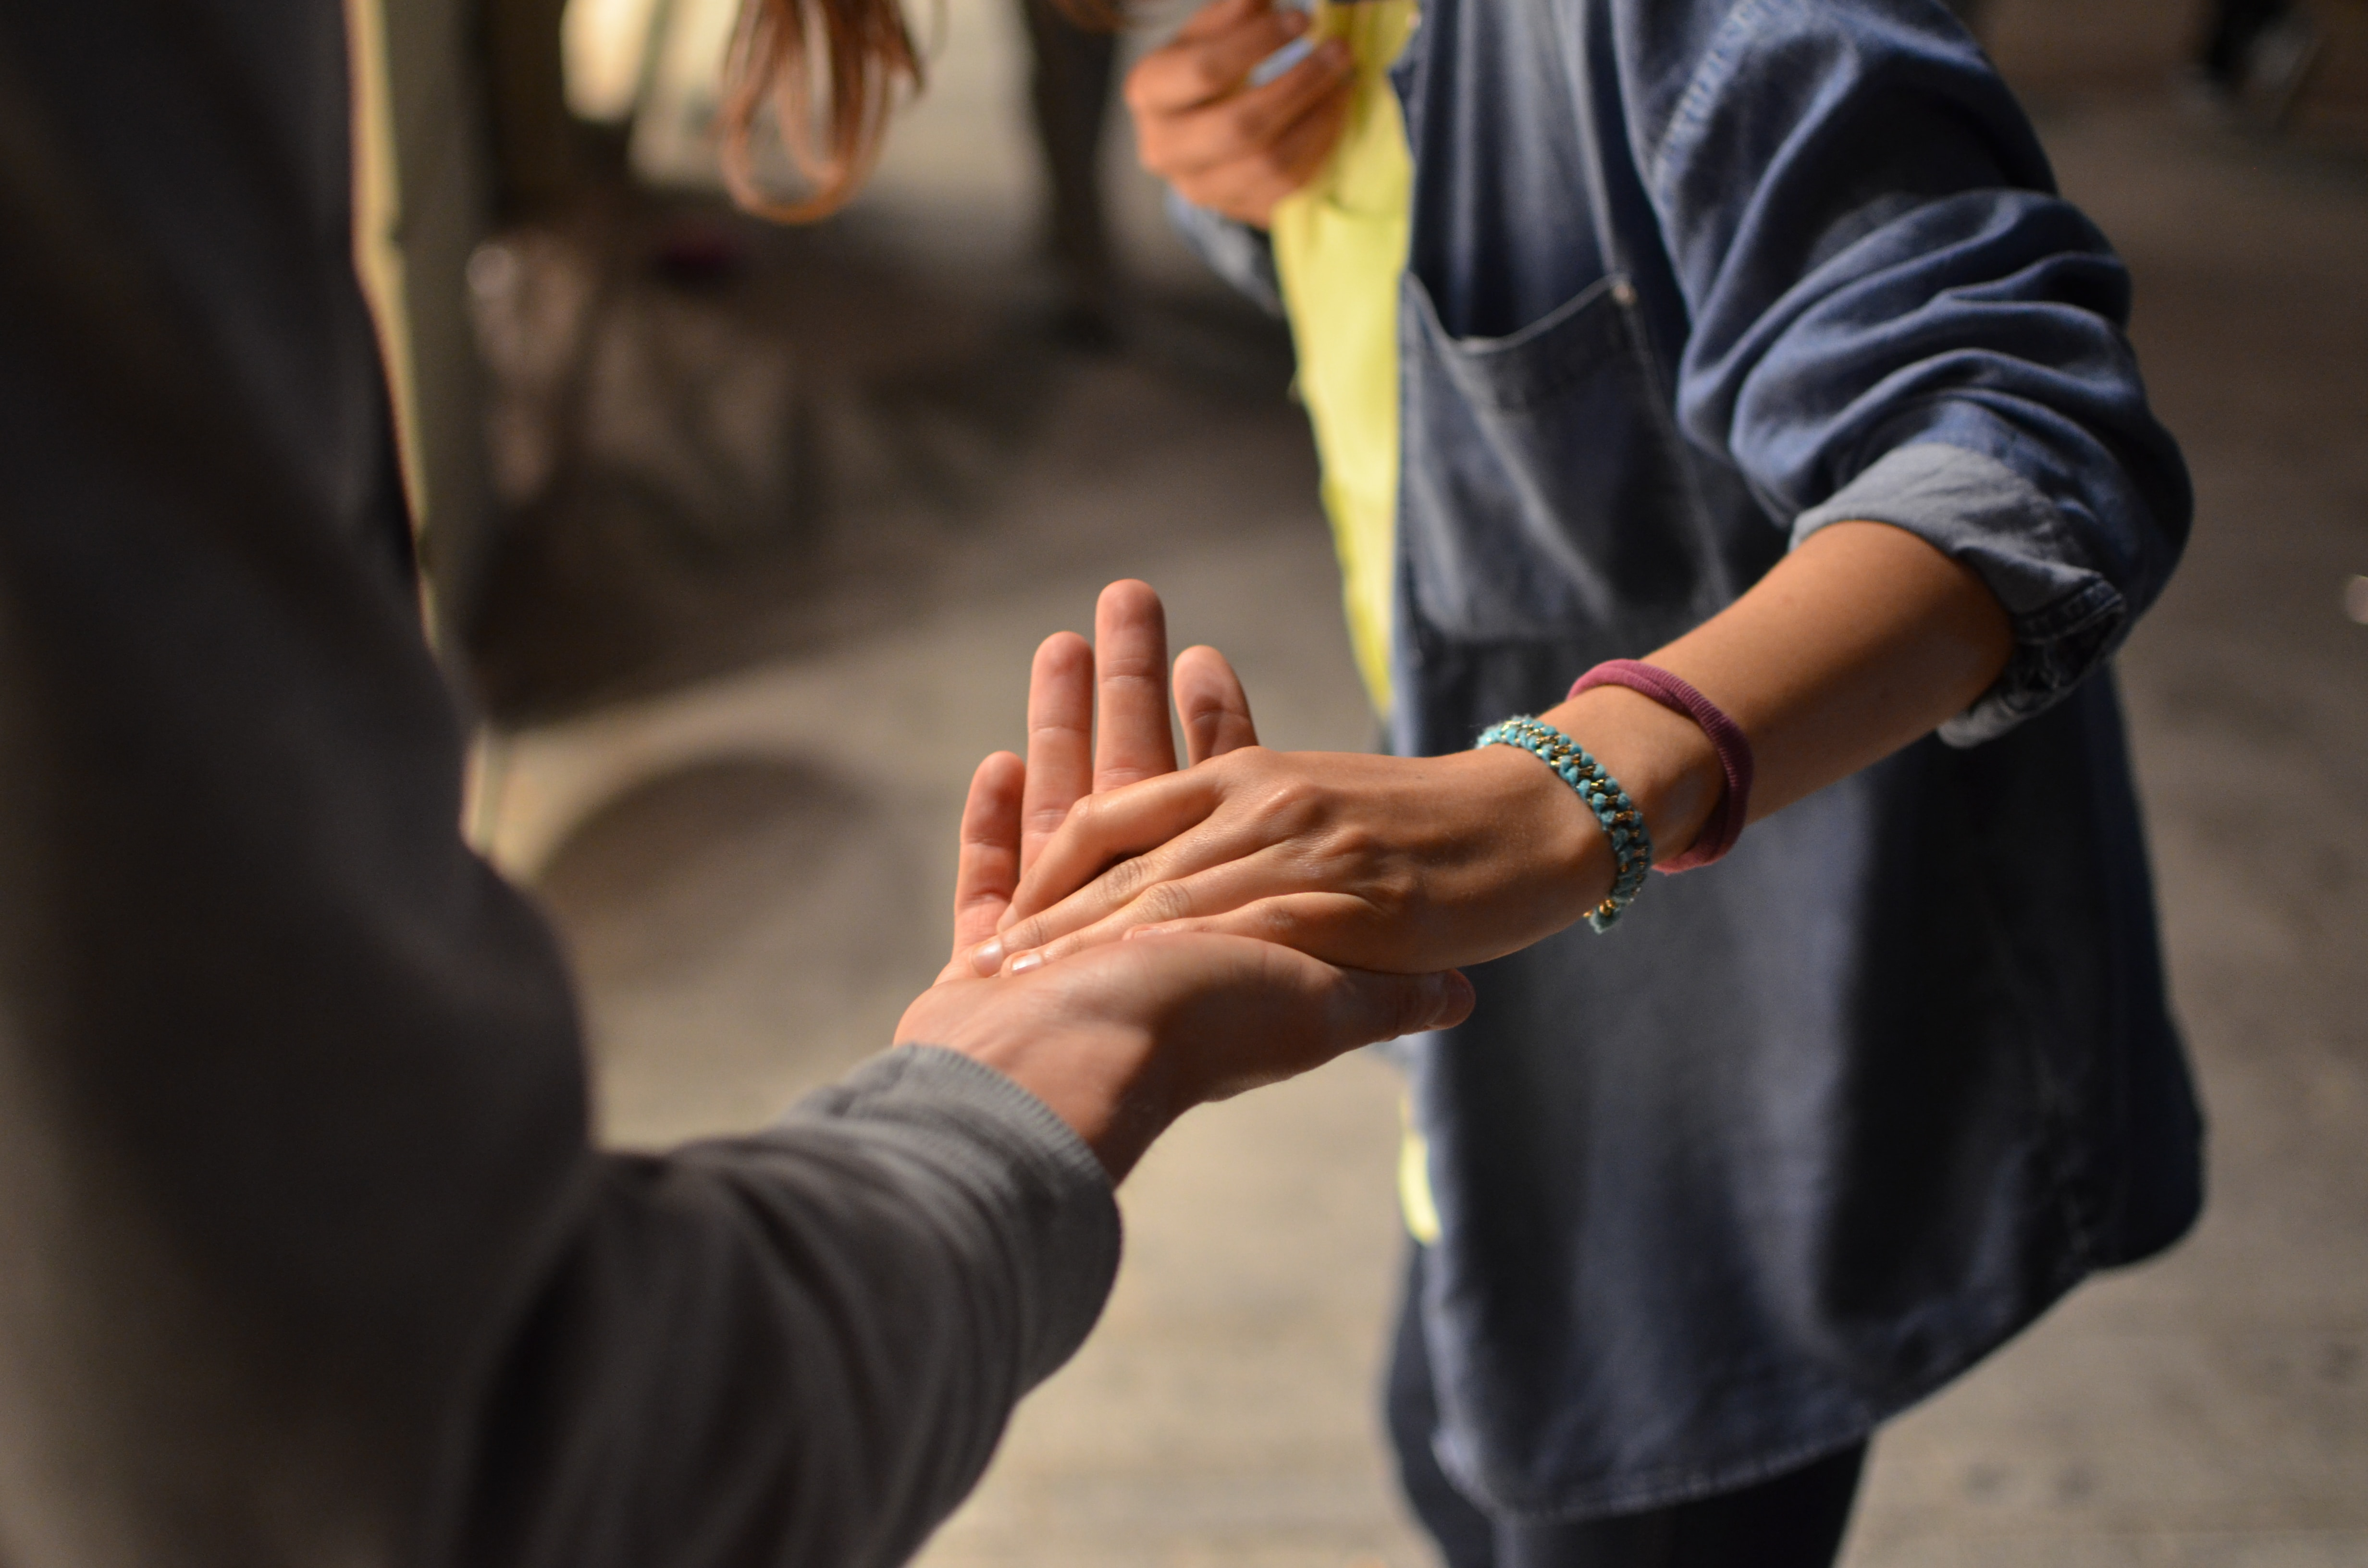 Two people holding hands to show support